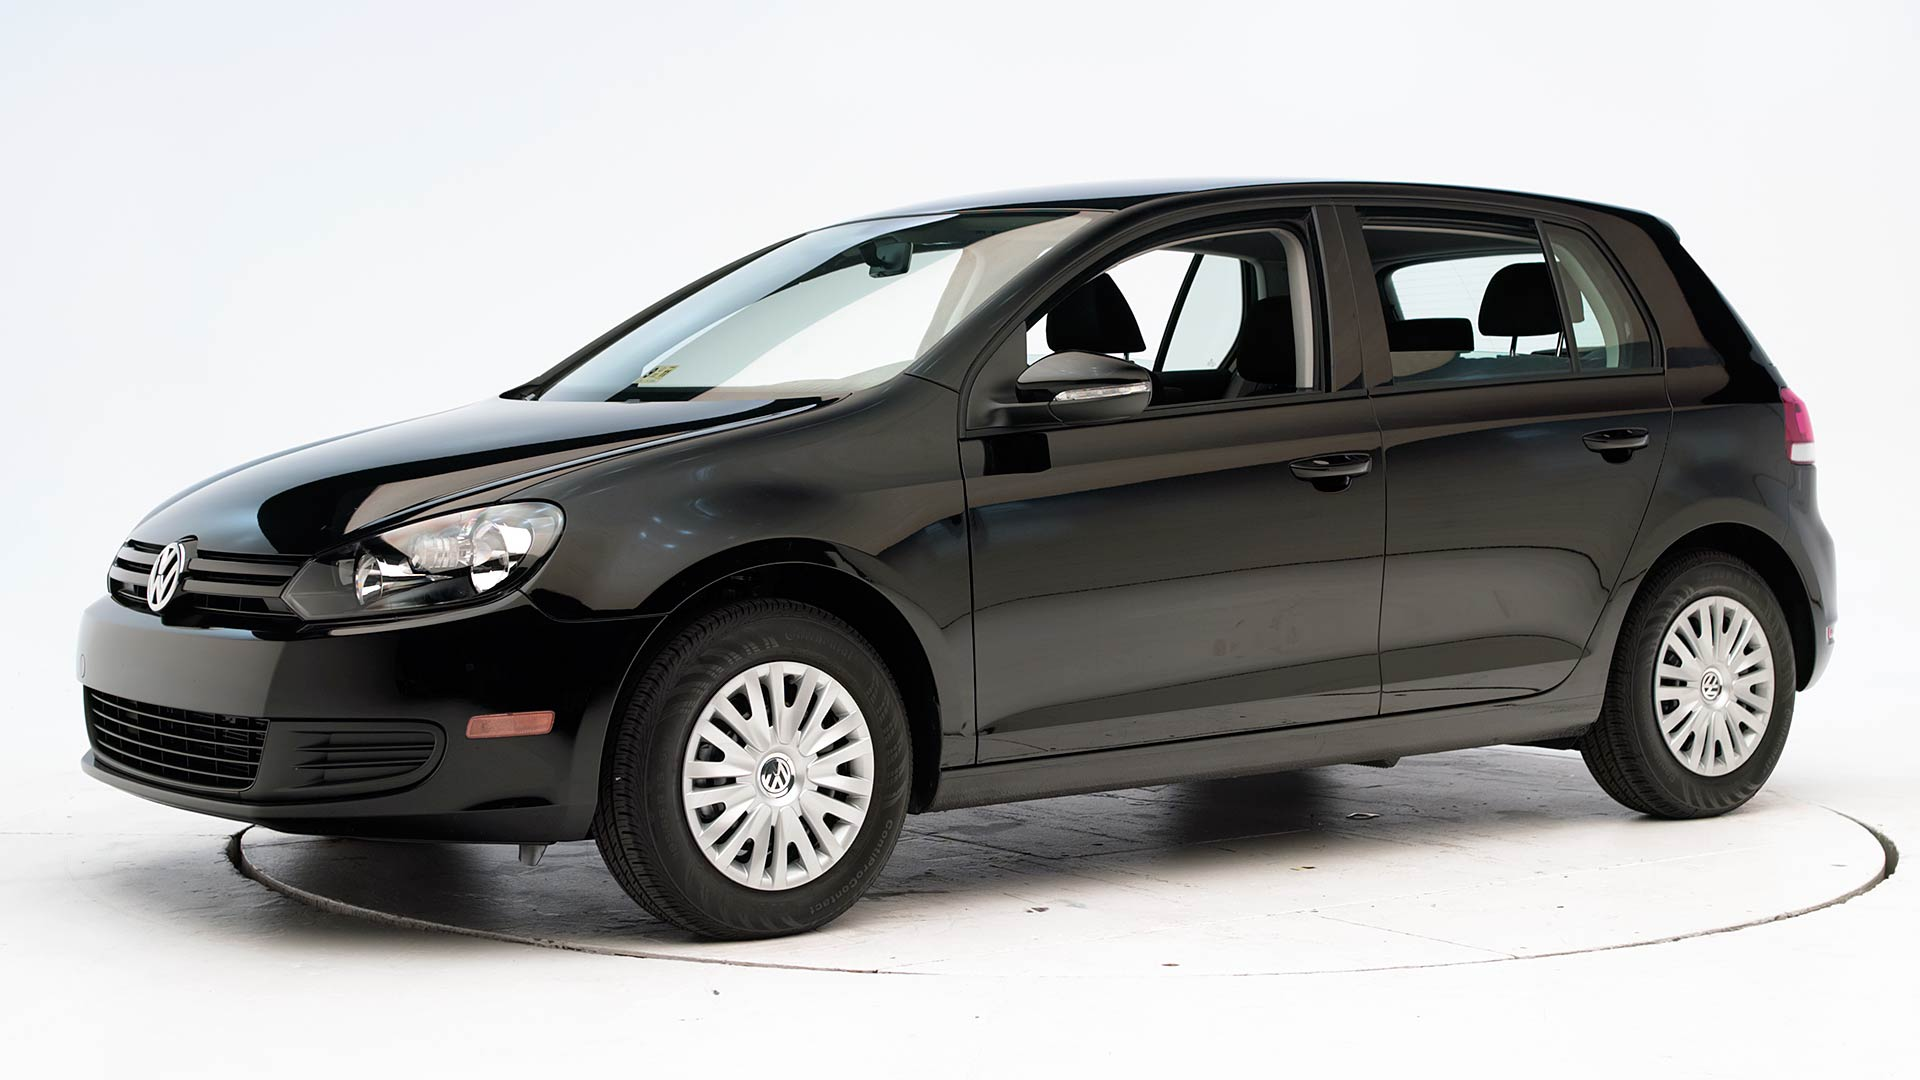 2011 Volkswagen Golf 4-door hatchback